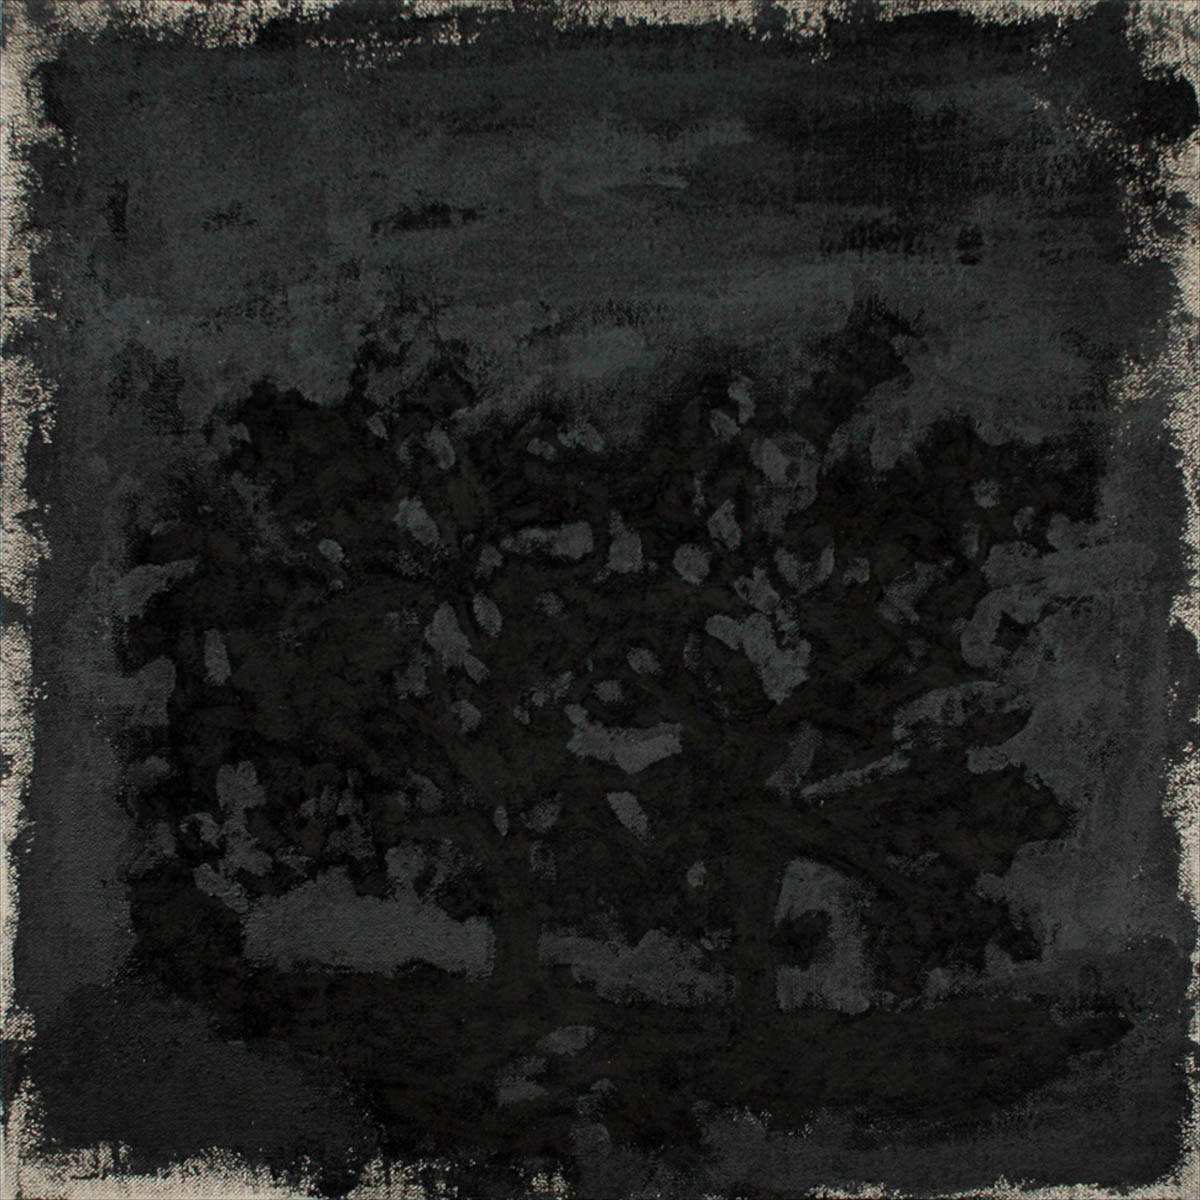 oil, charcoal and graphite on linen16 x 16in., 2009